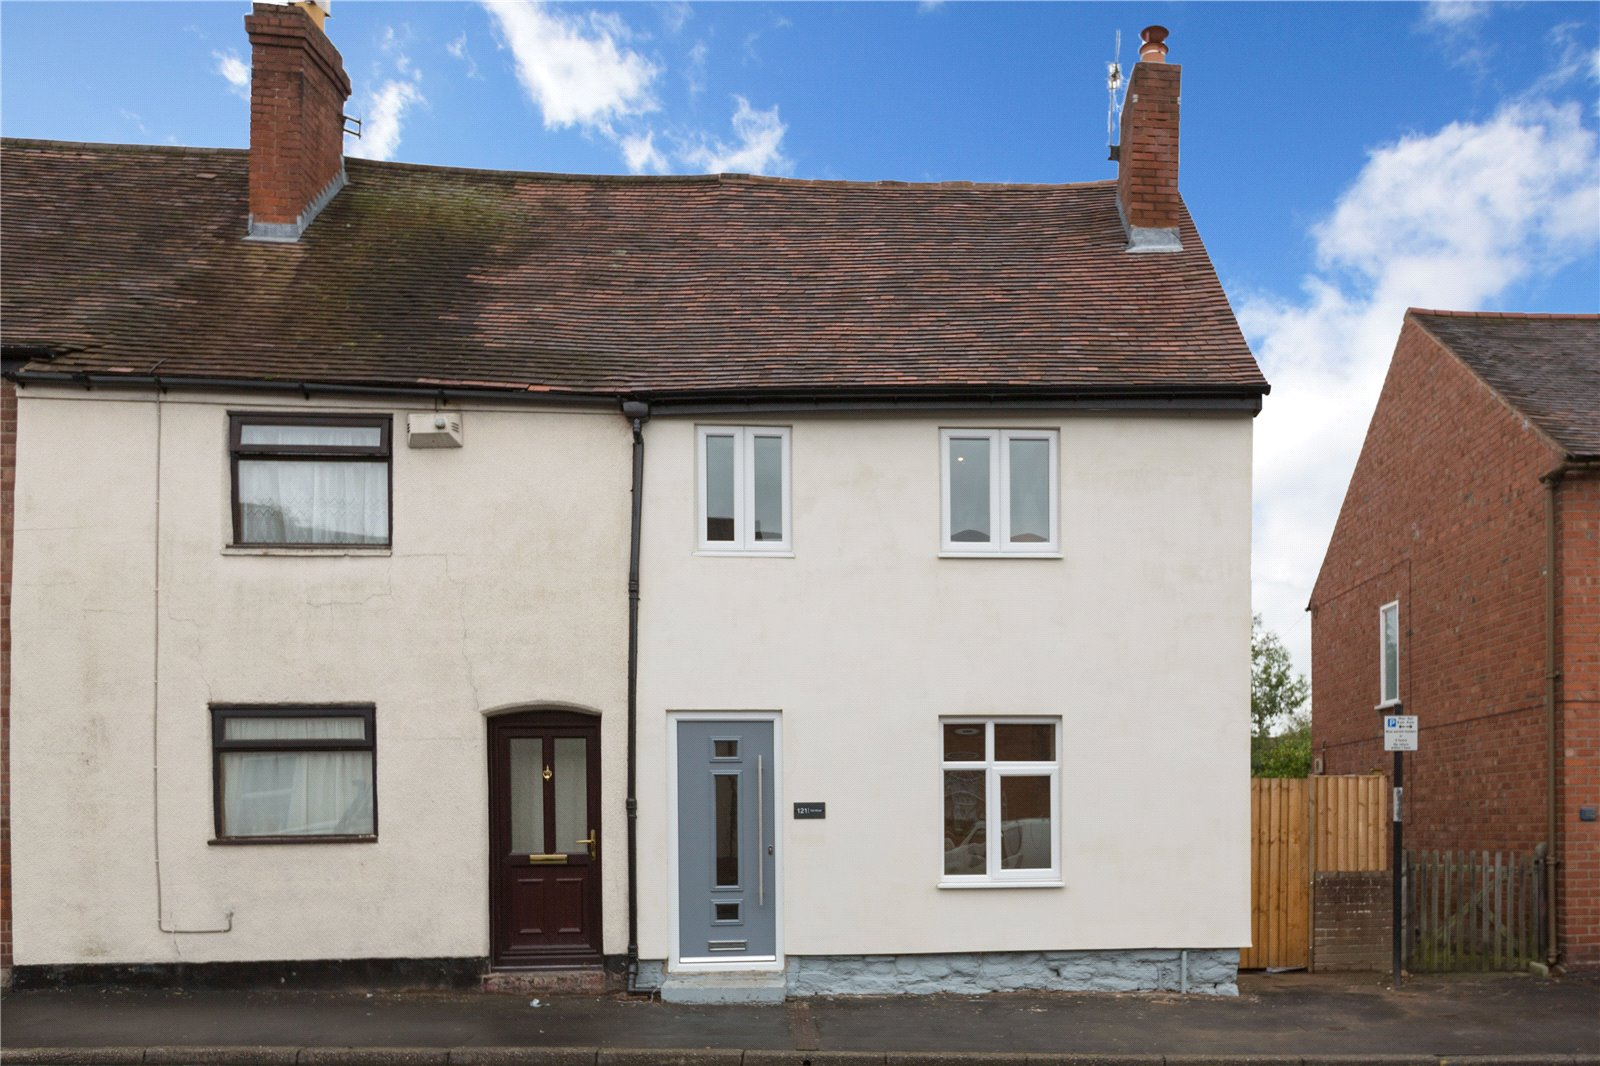 121 Old Street, Ludlow, Shropshire, SY8